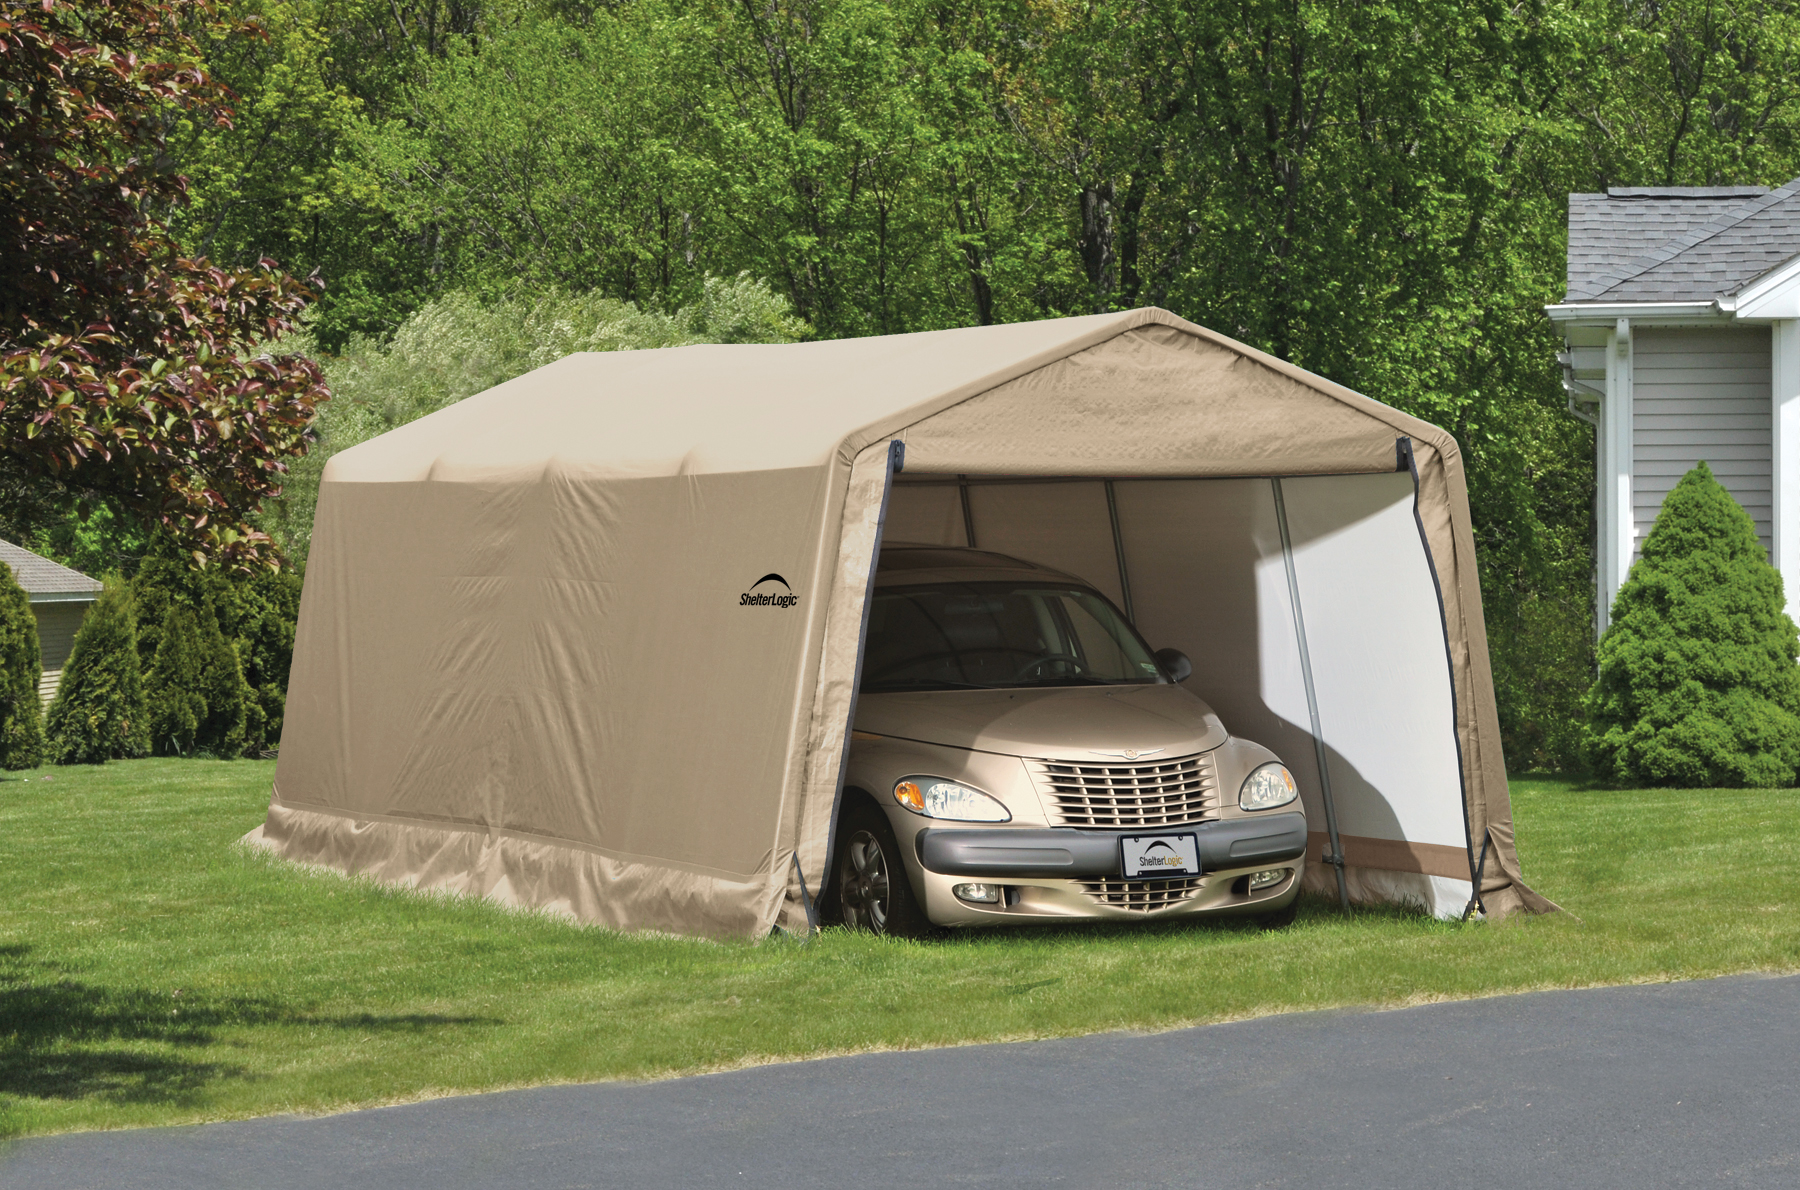 Small Car Shelters : Shelterlogic portable car garage shelters